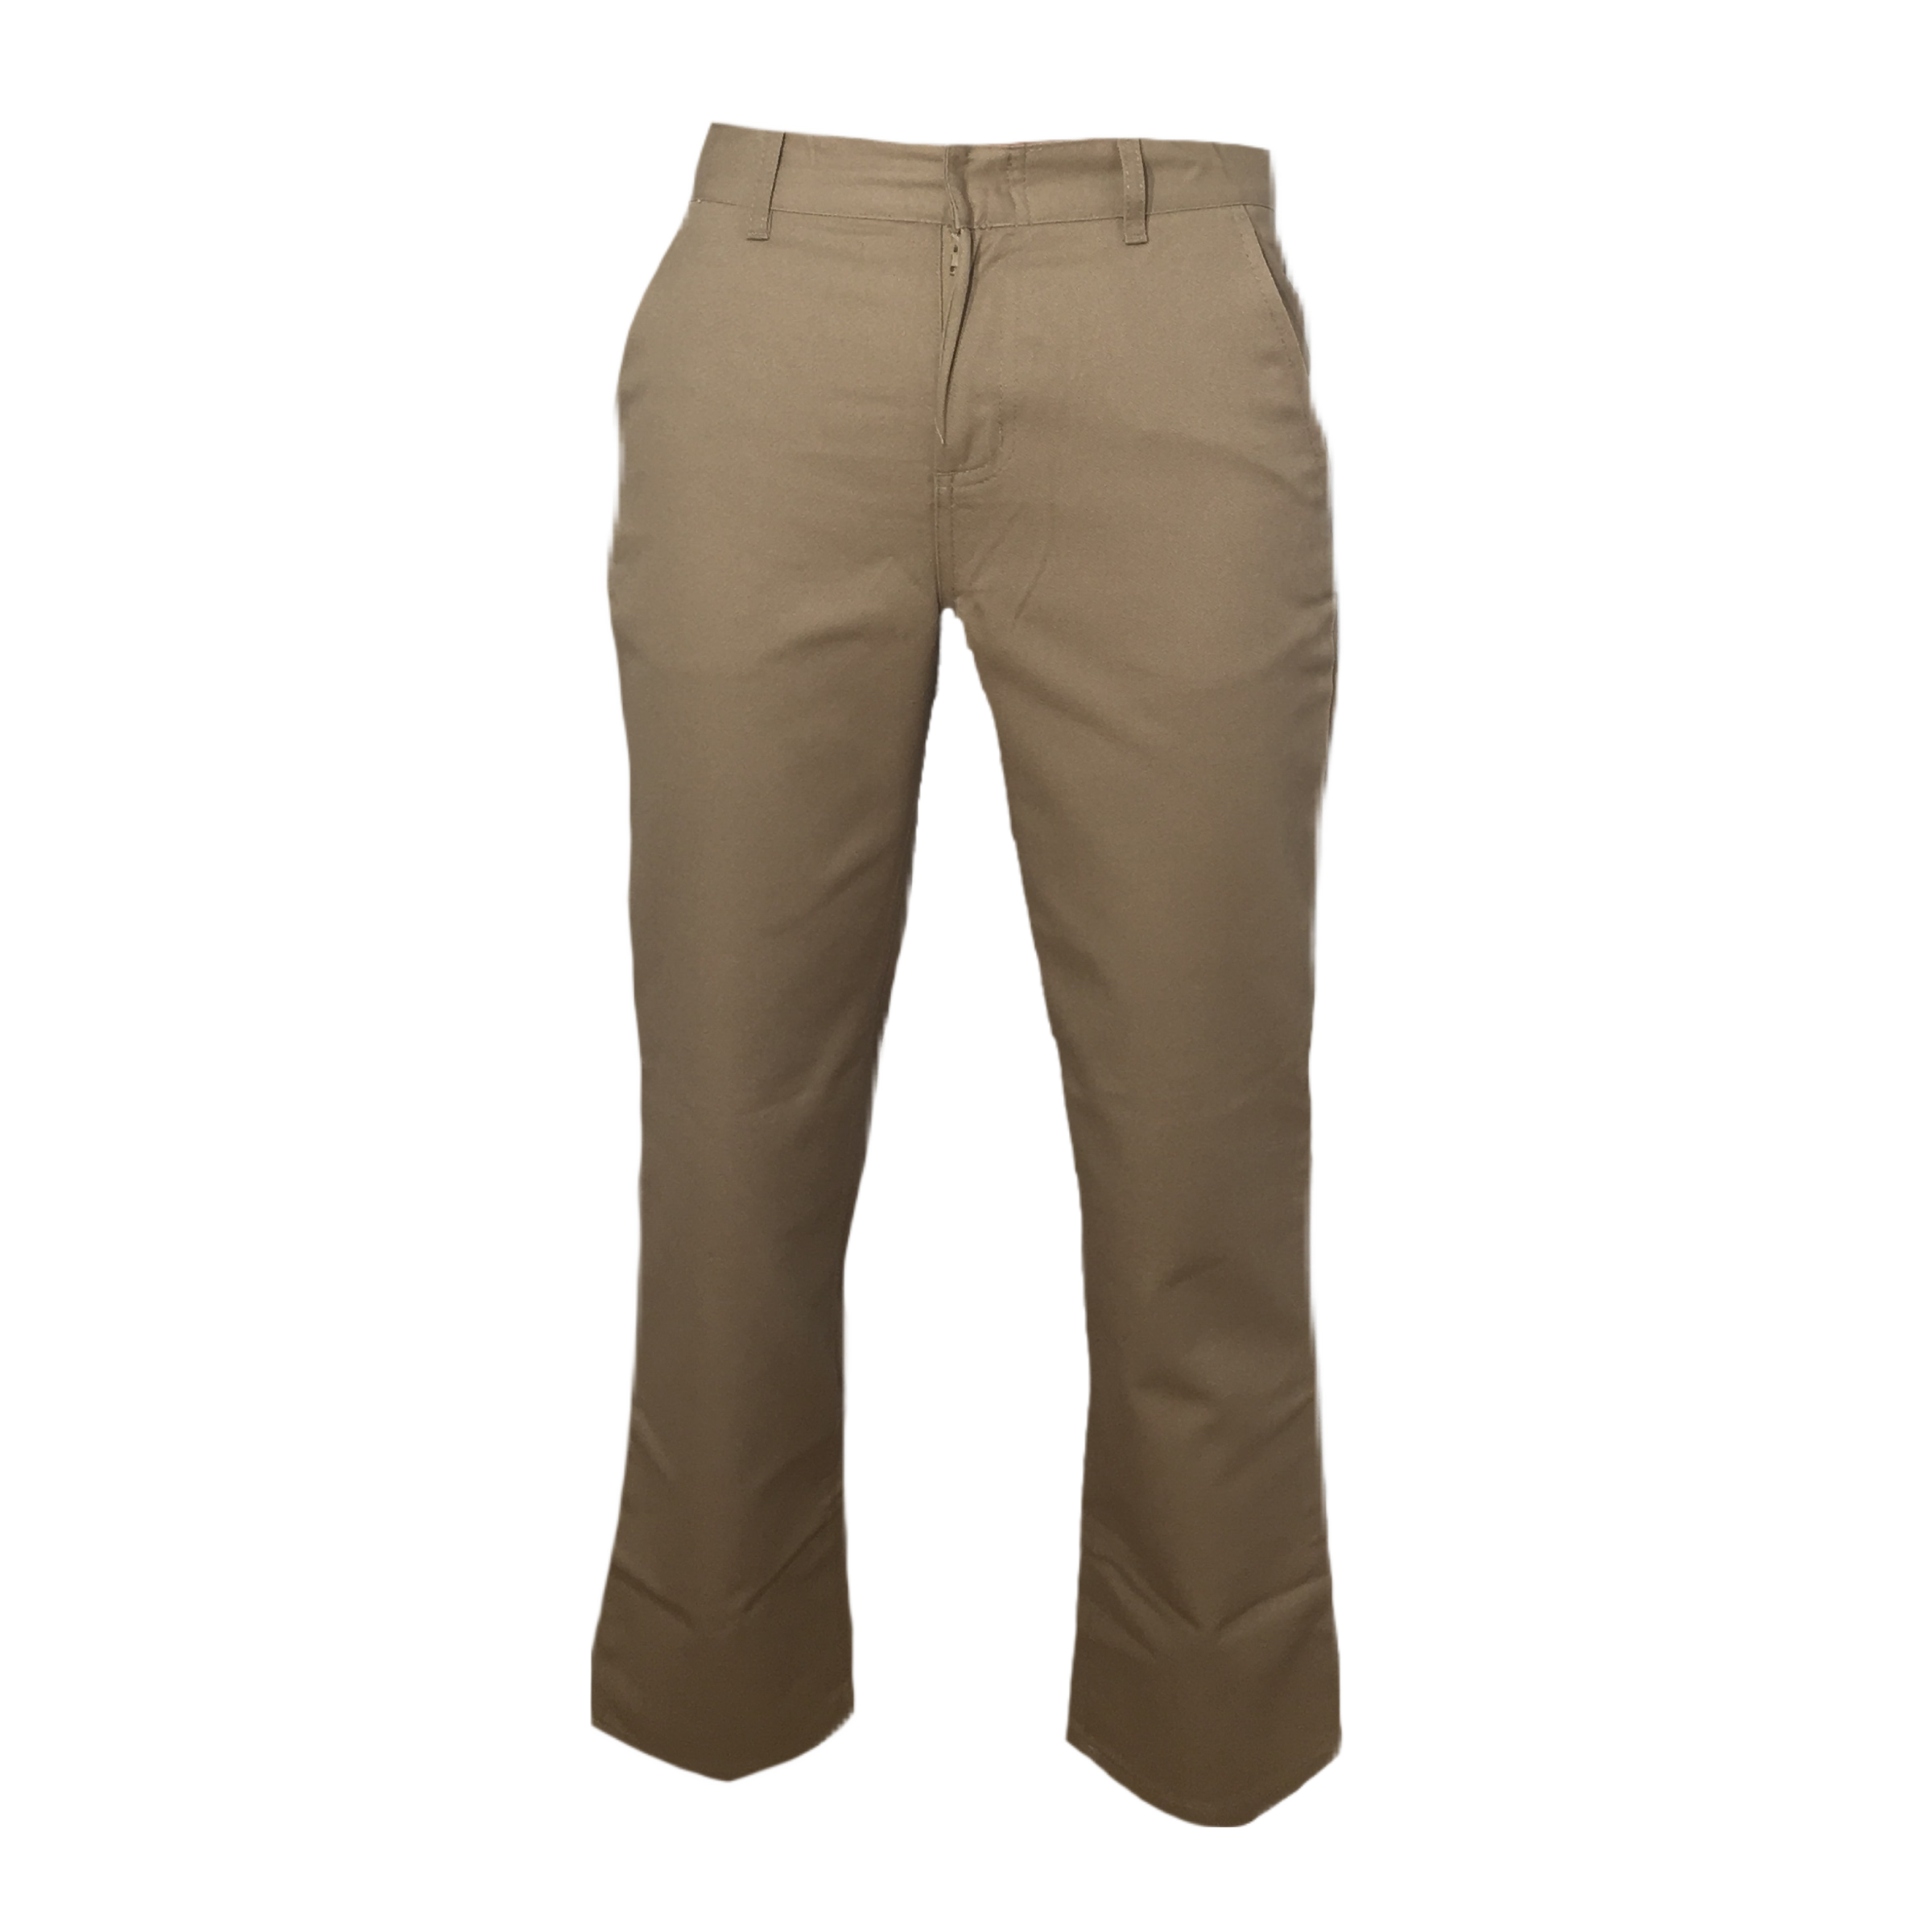 BOYS - PREMIUM - Pant Flat Front Pull Up